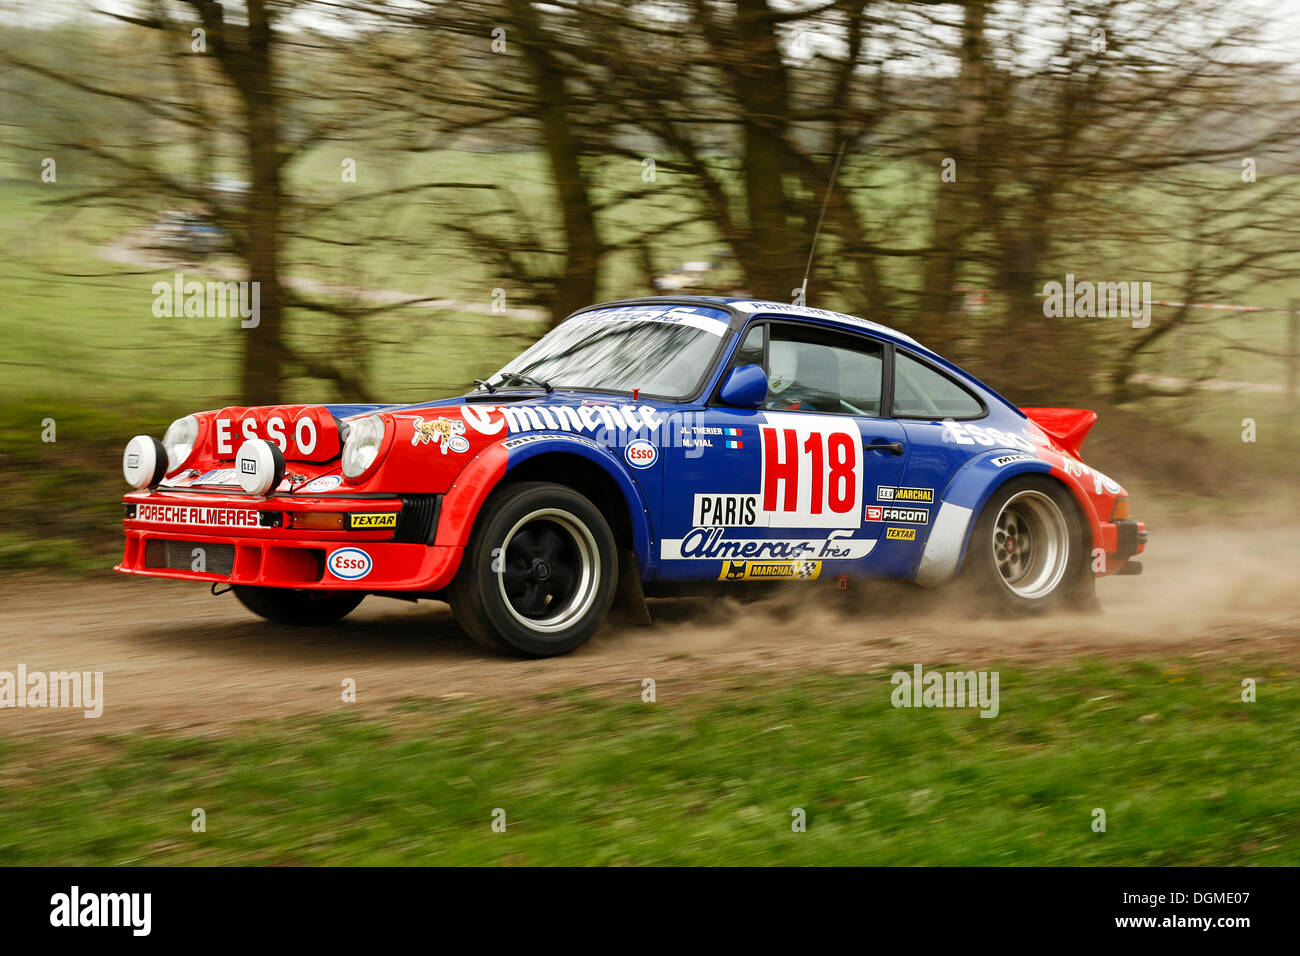 Porsche 911 Built In 1982 Vintage Rally Car During The German